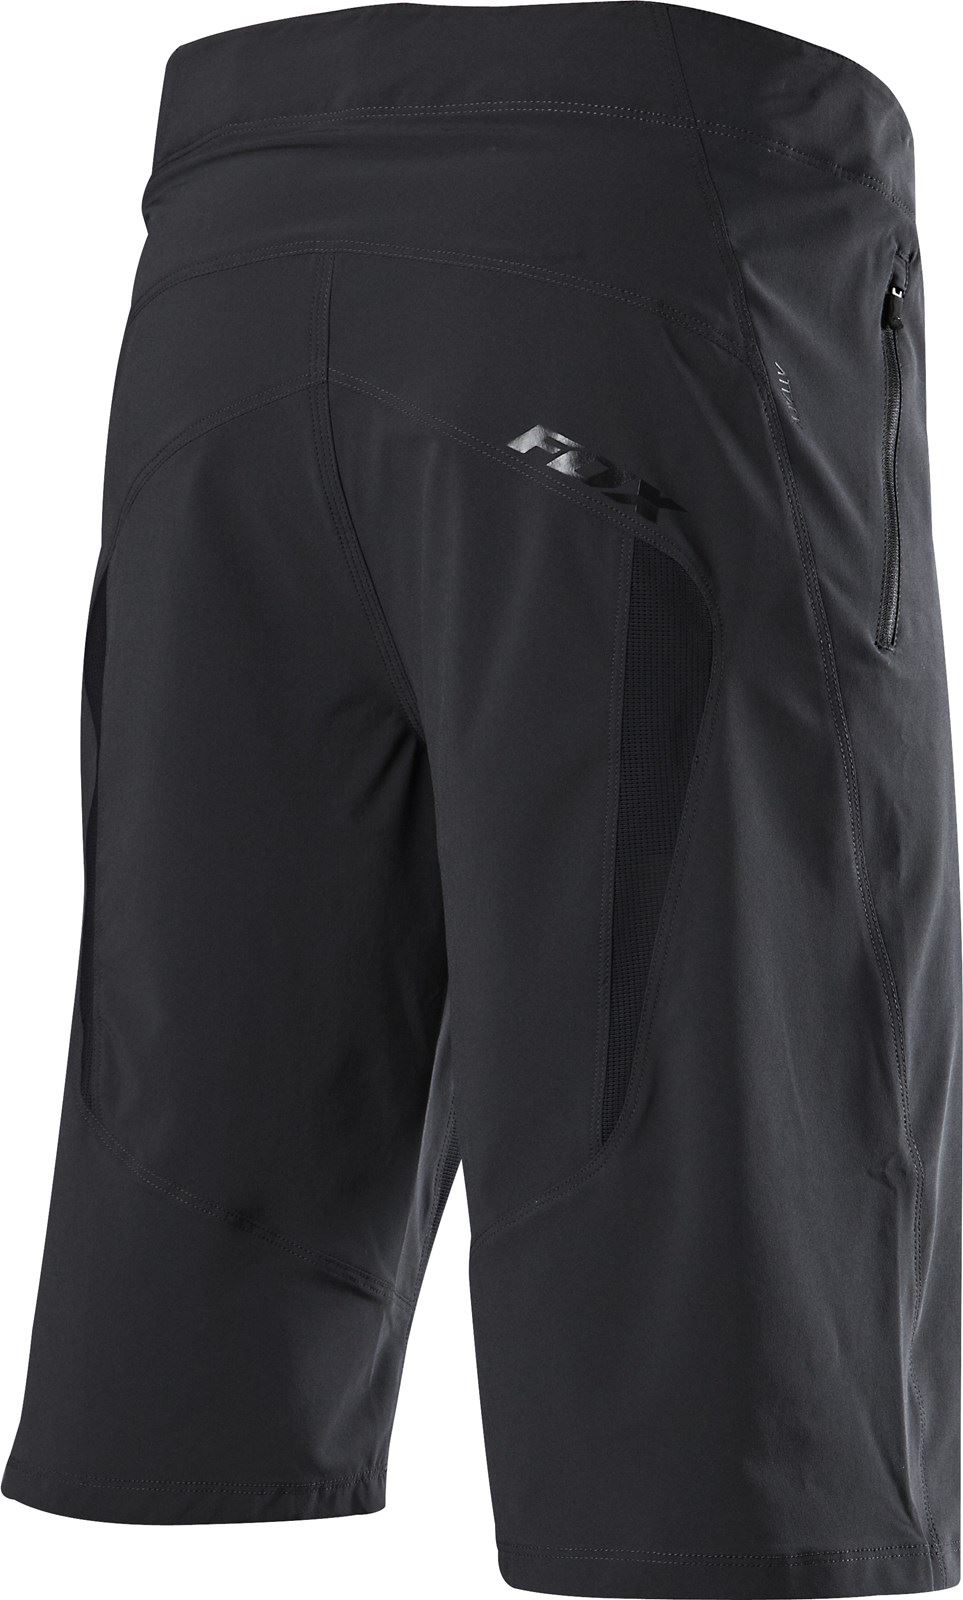 Fox Indicator Mountain Biking Cycling Shorts Black